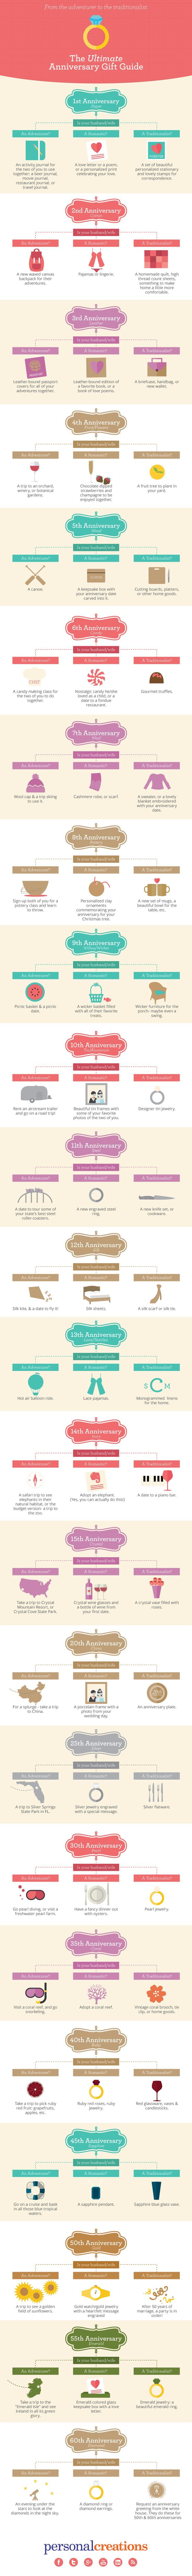 Infographic: The Ultimate Anniversary Gift Guide